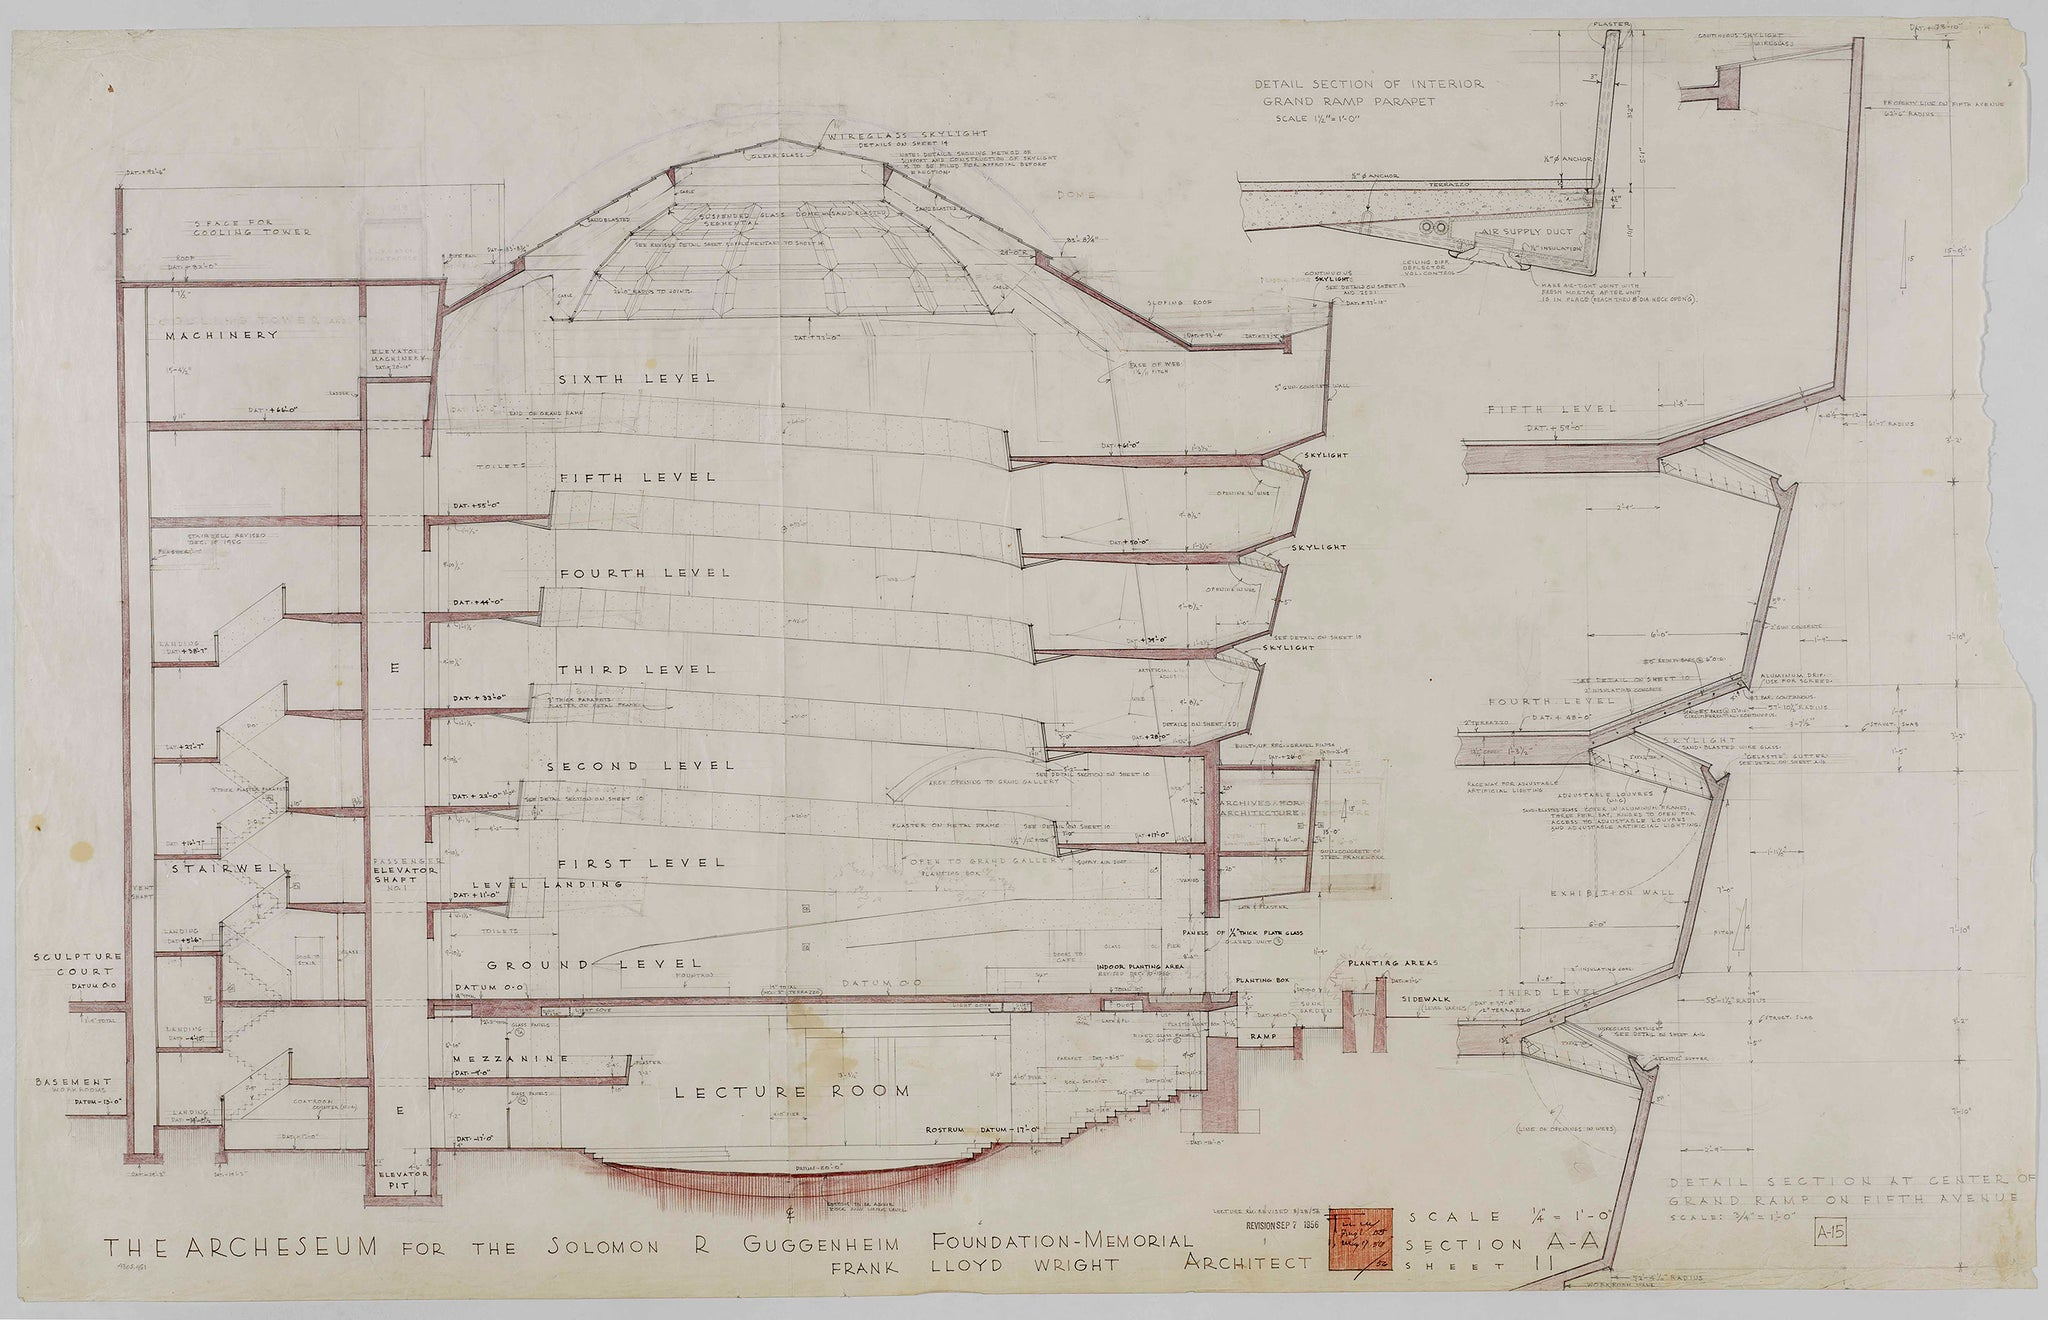 technical drawing of the Guggenheim museum by Frank Lloyd Wrigt